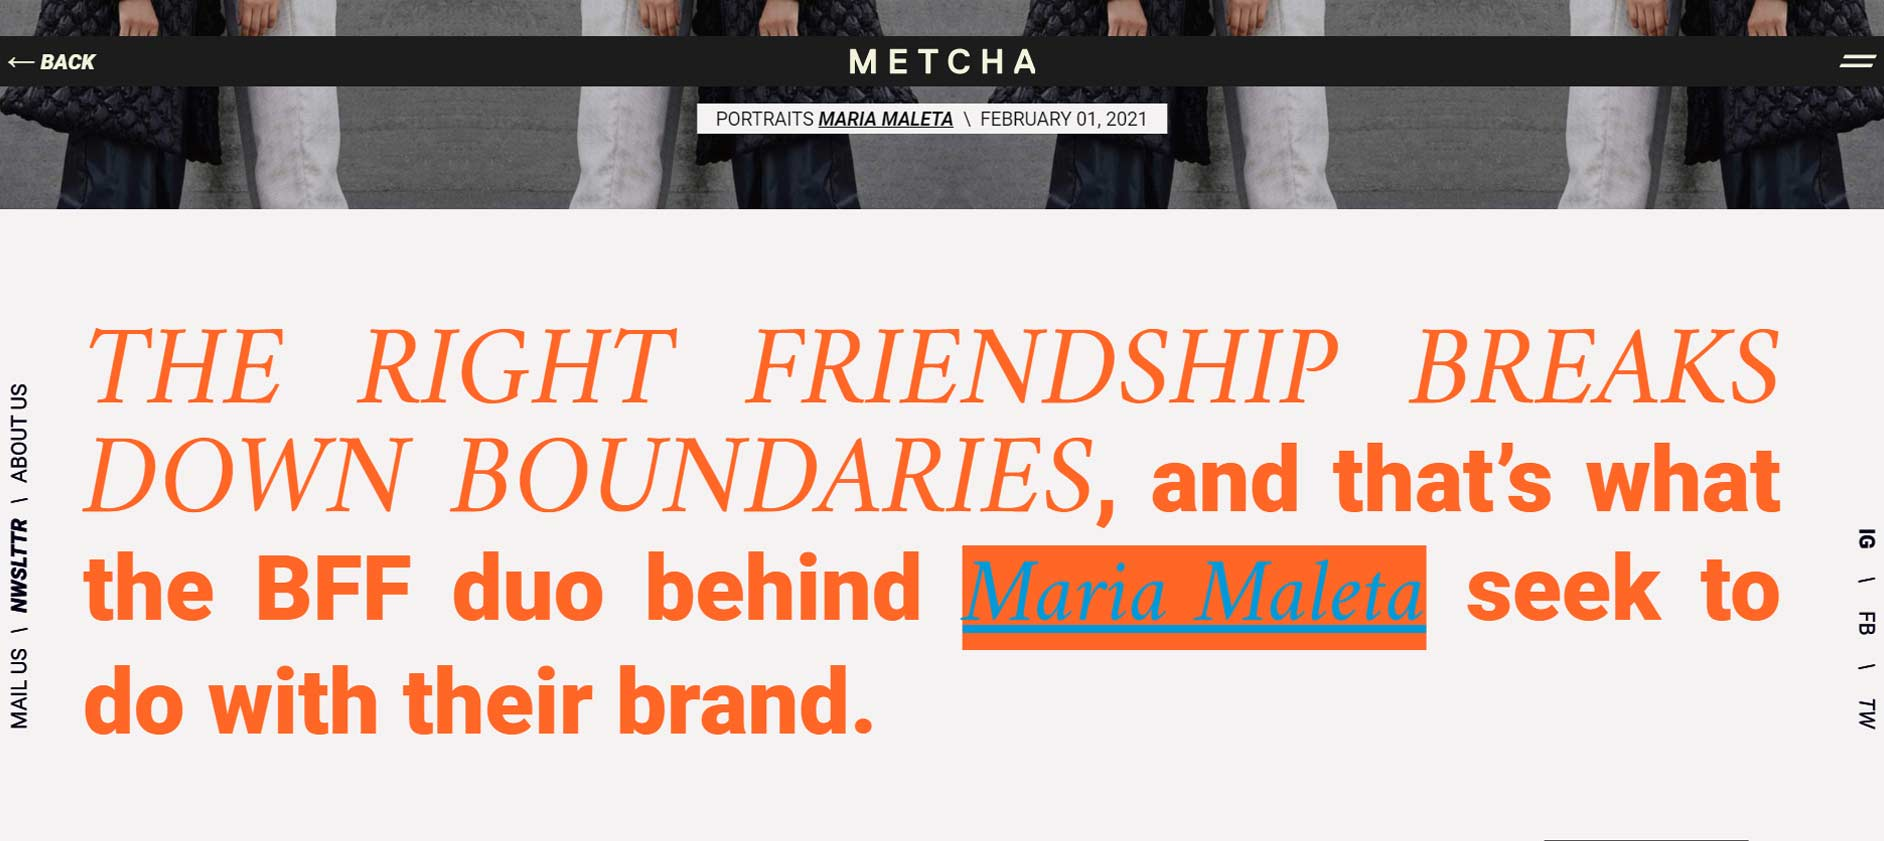 metcha-article-bags-brand-friendship2